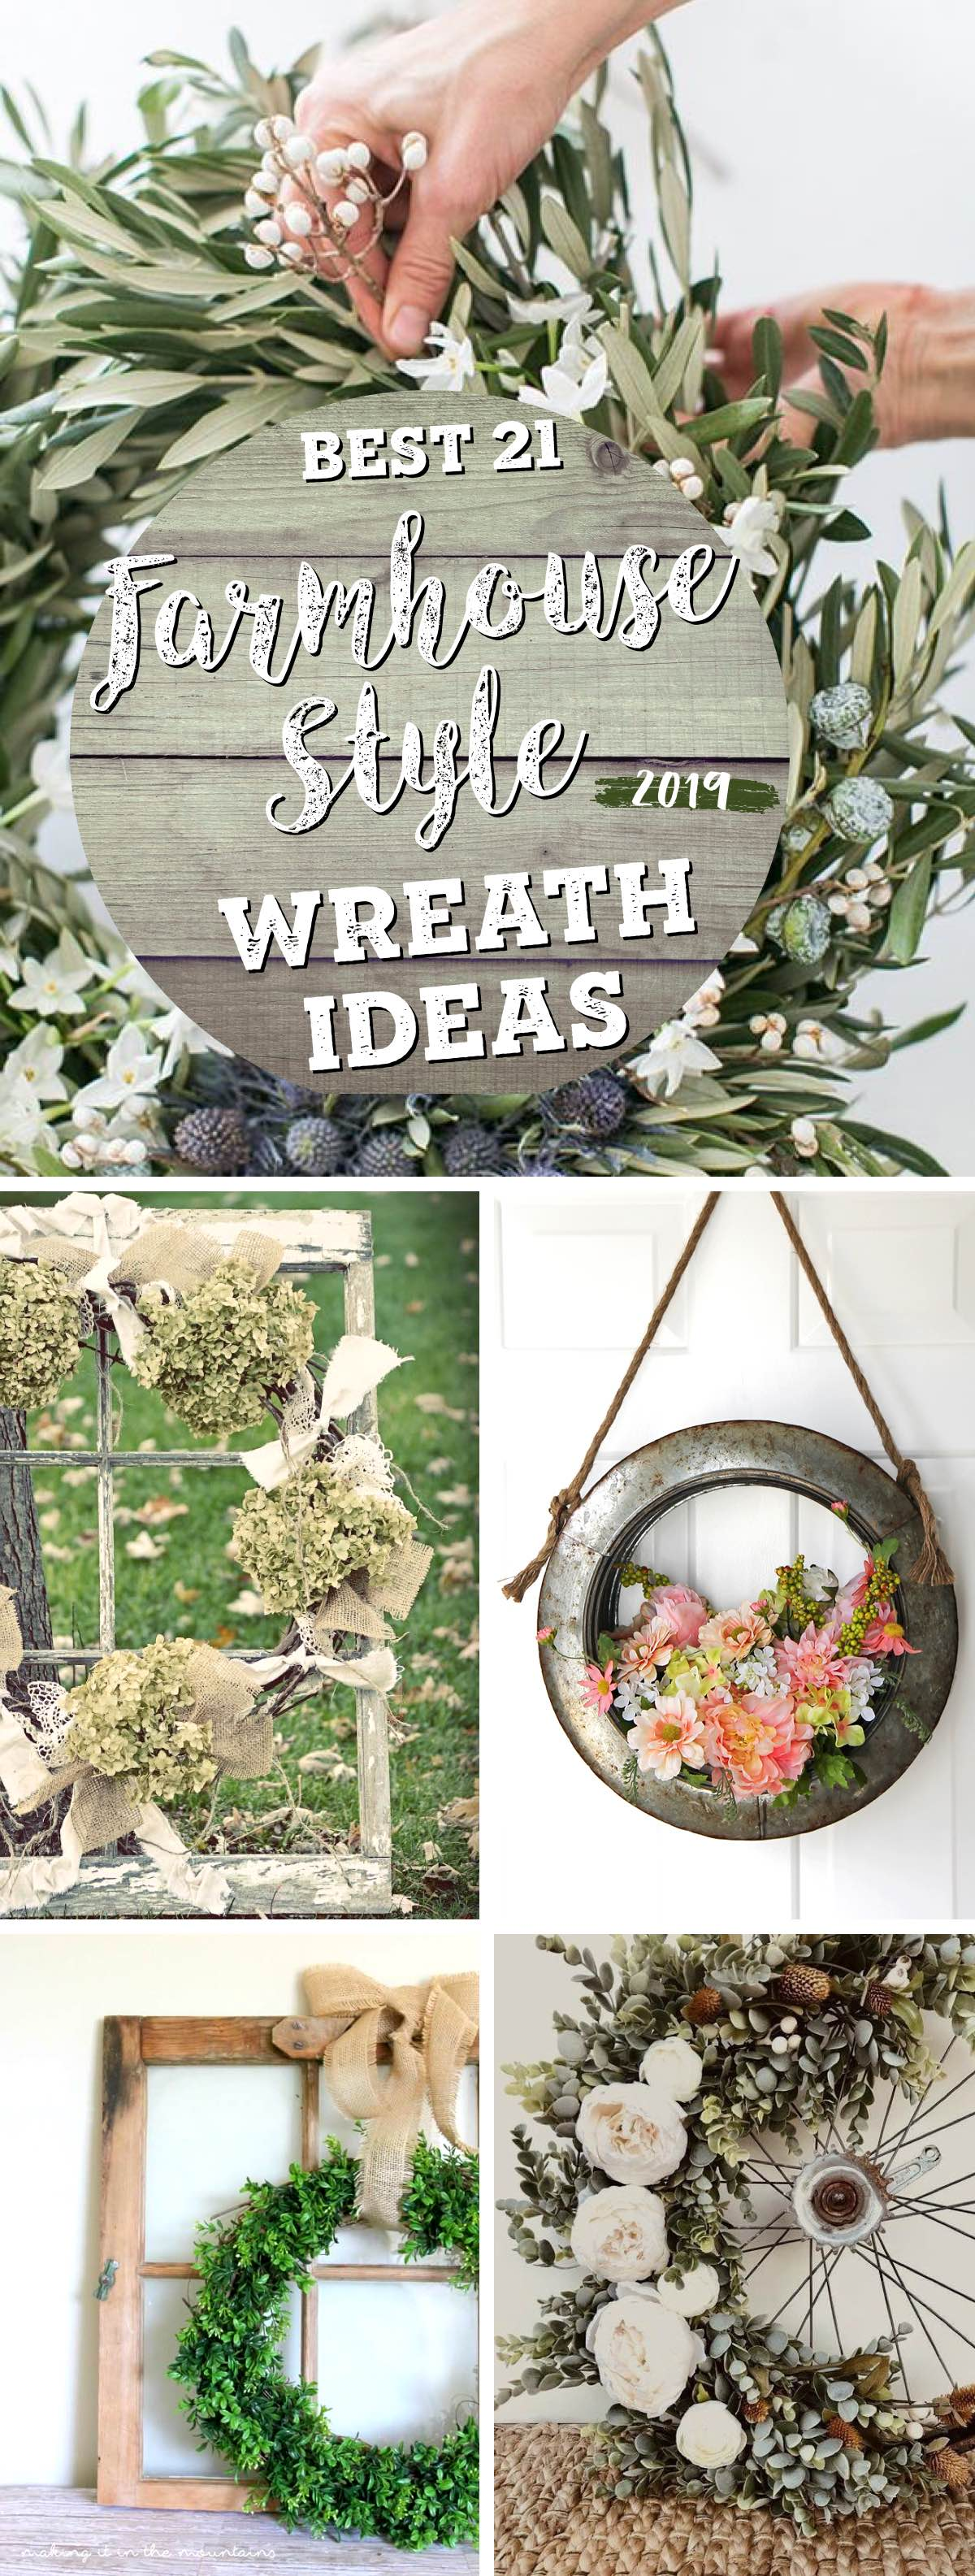 21 Best Rustic Farmhouse Wreath Ideas And Designs For 2019